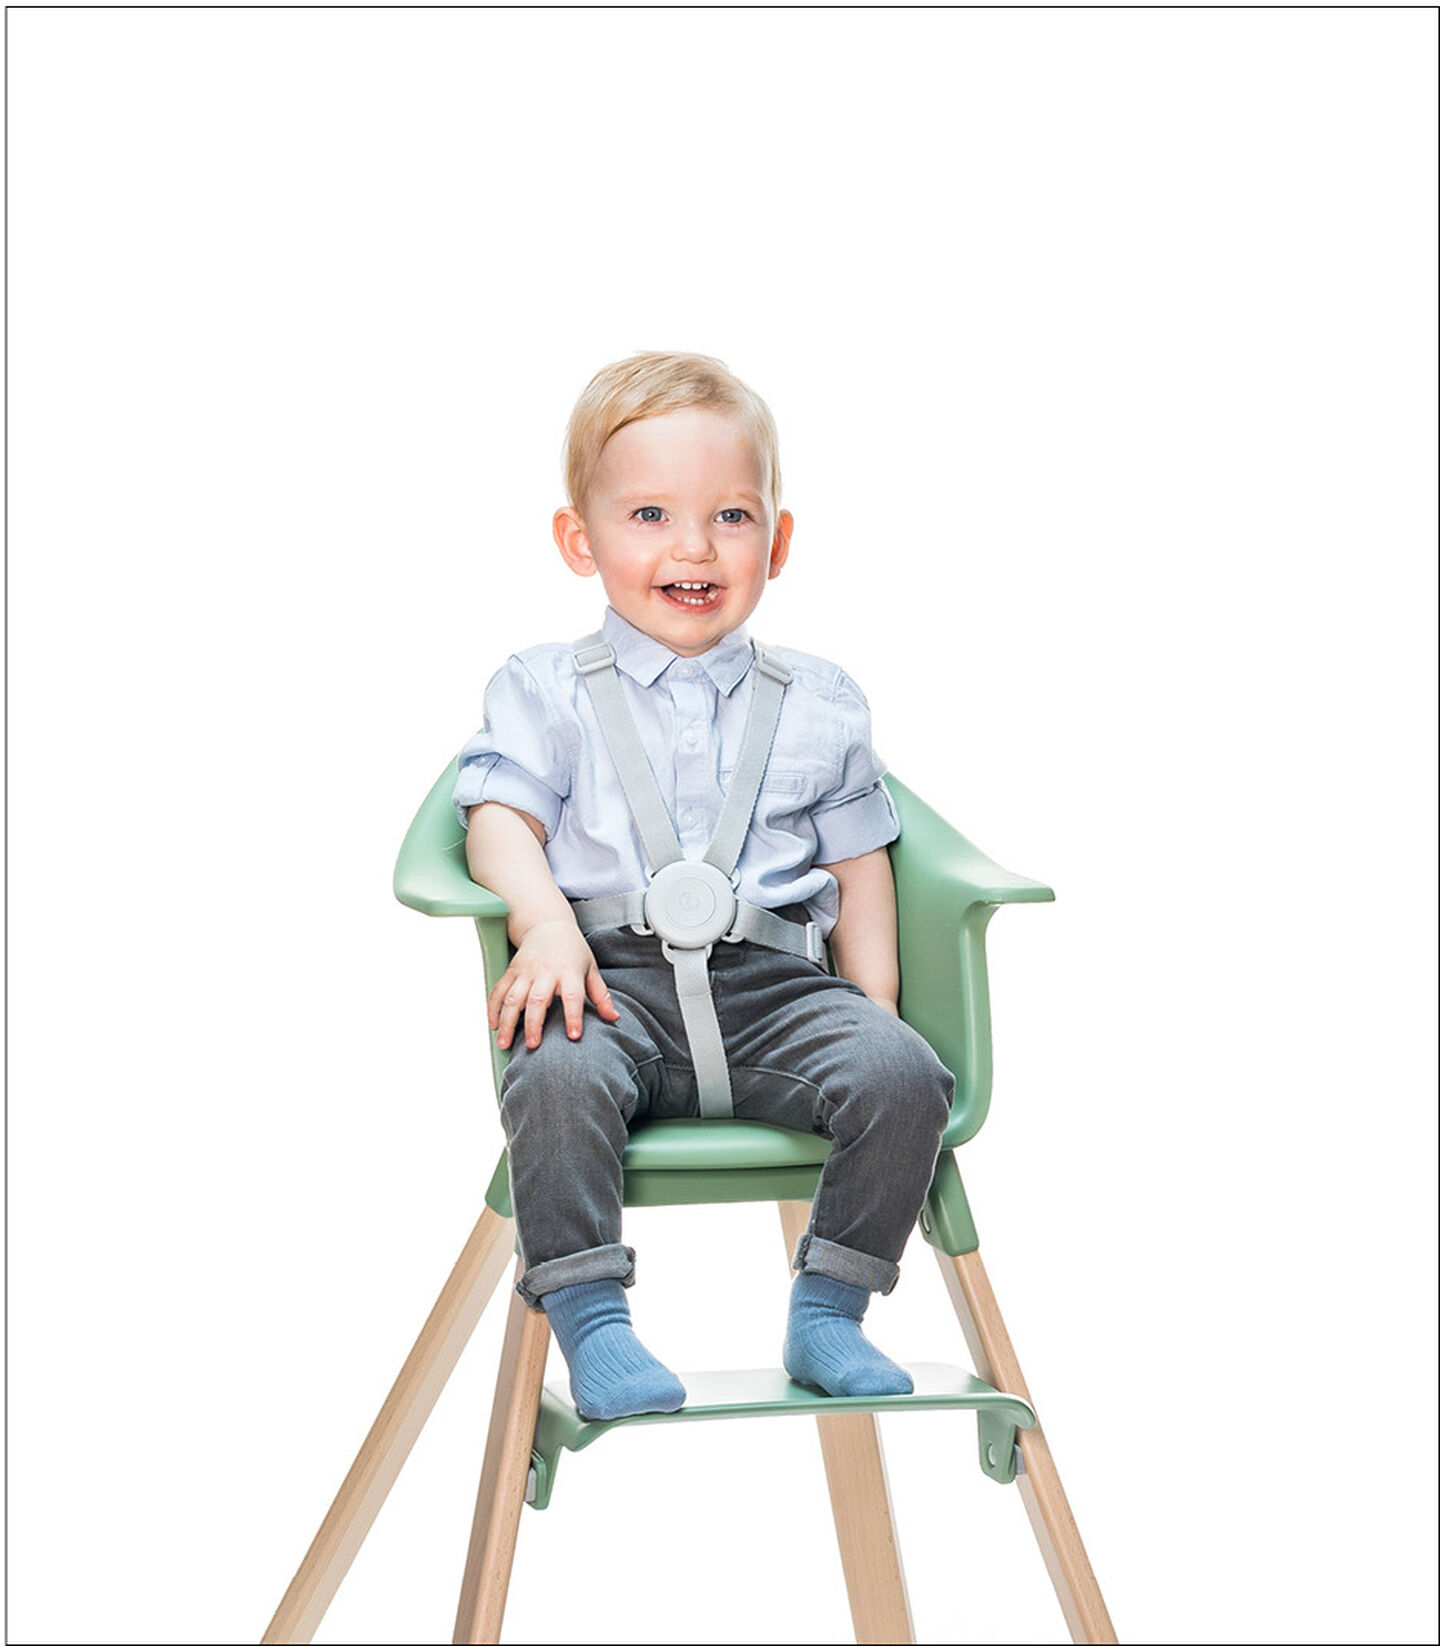 Stokke® Clikk™ High Chair. Natural Beech wood and Clover Green plastic parts. Harness.